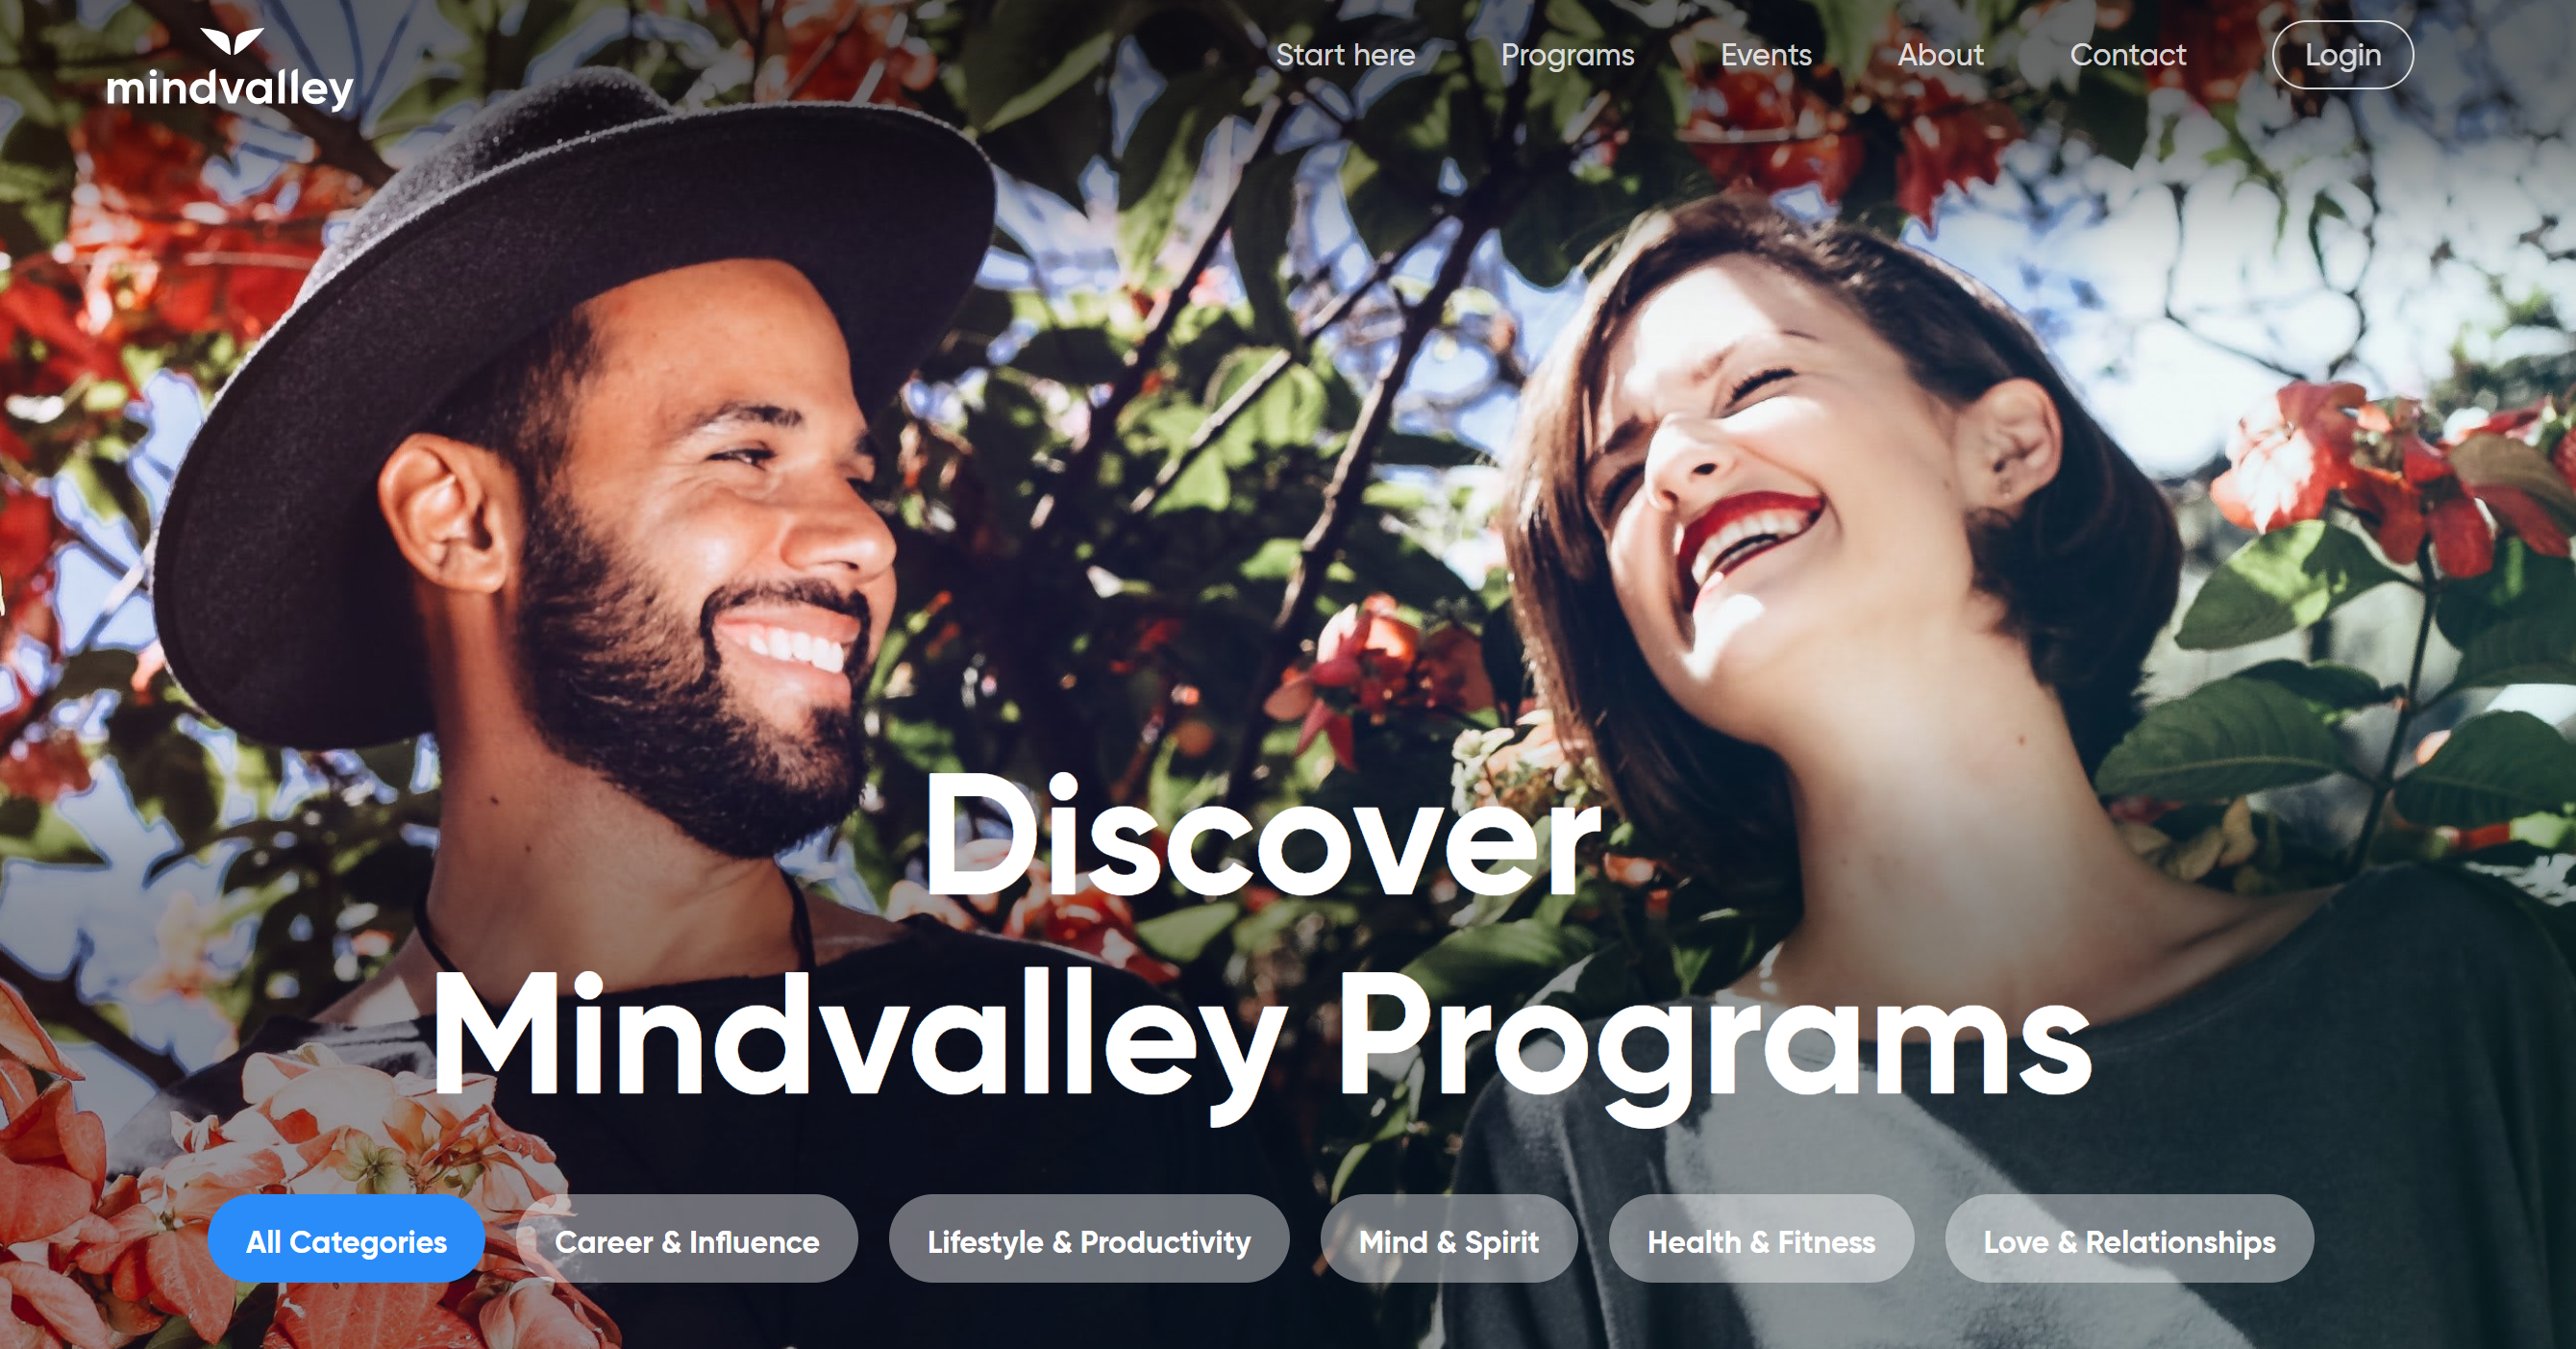 mindvalley discount coupon code -Discover